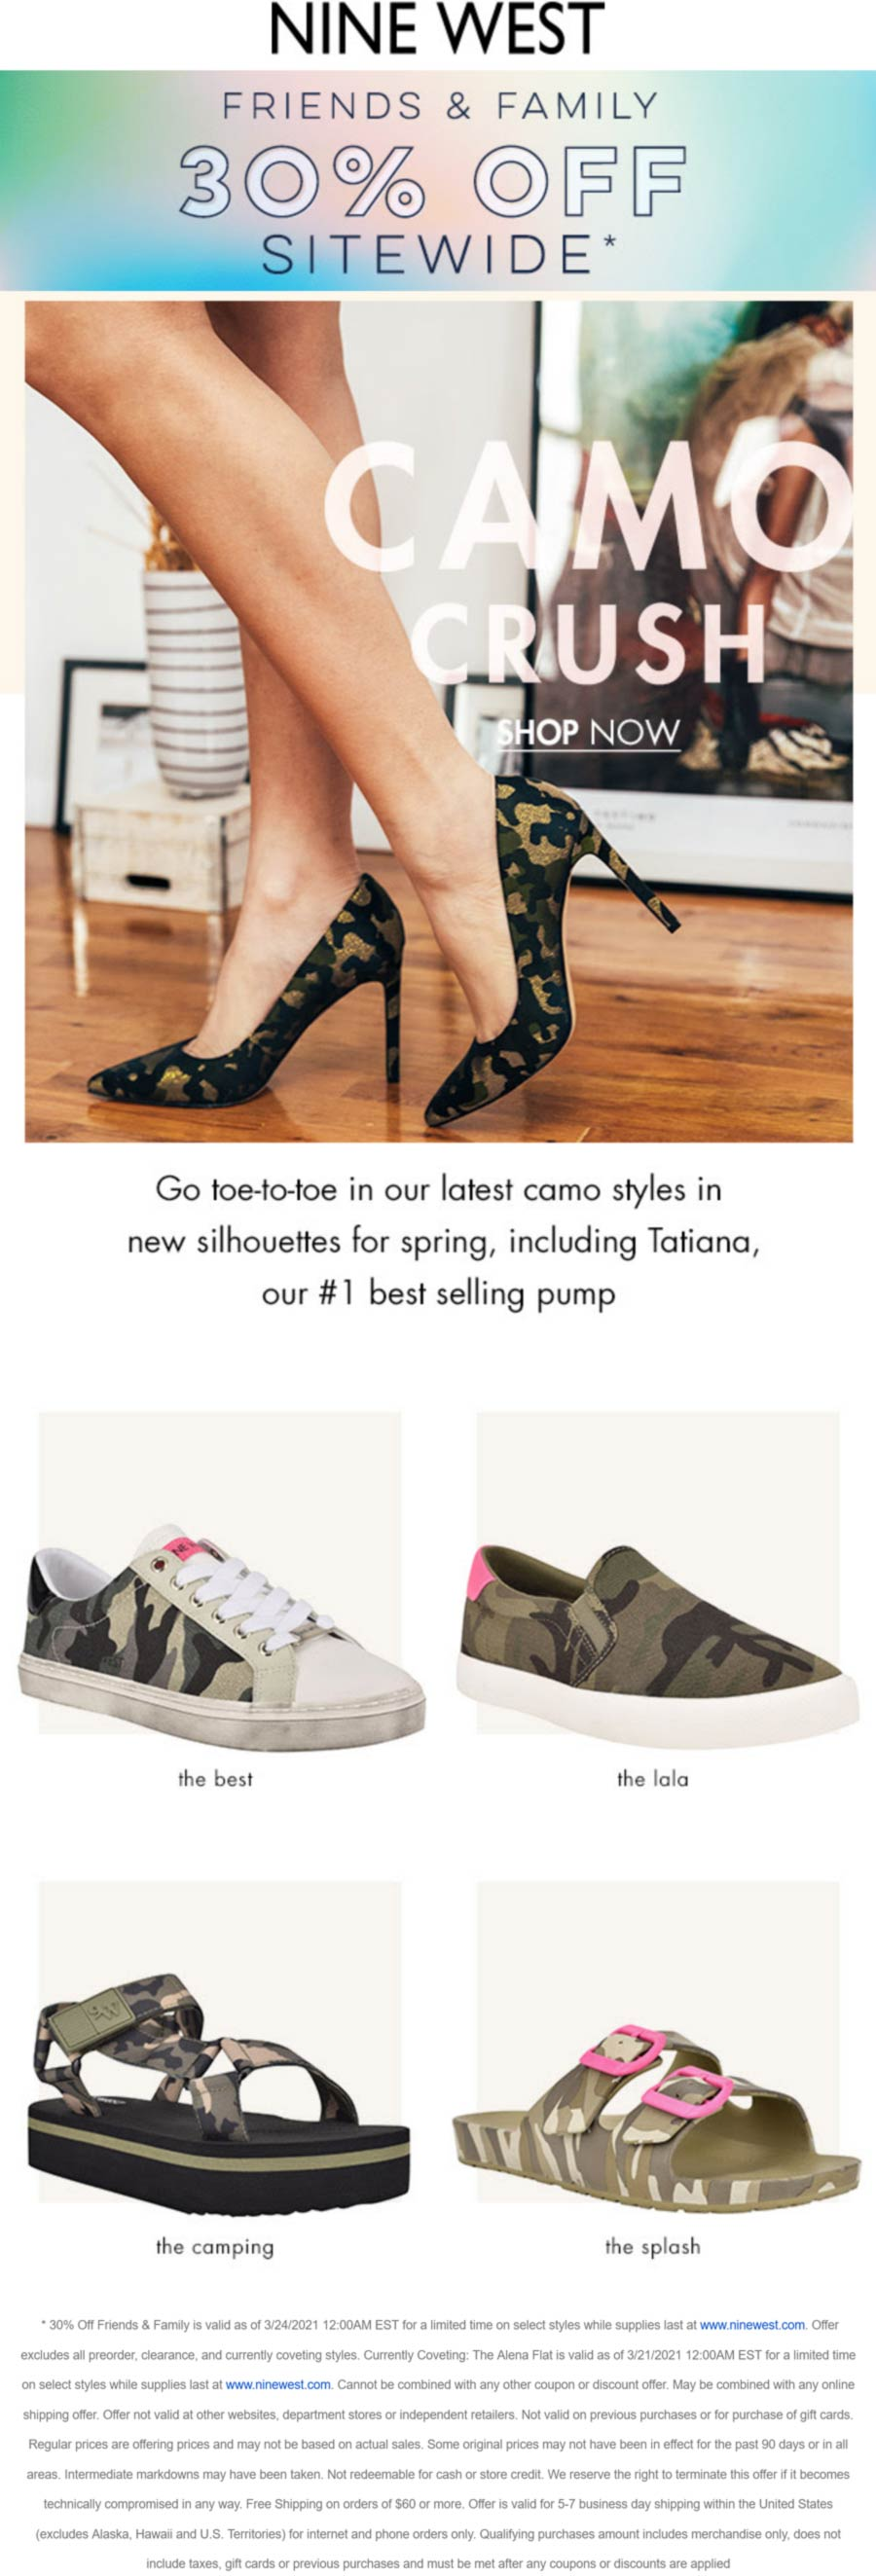 Nine West stores Coupon  30% off everything online at Nine West #ninewest